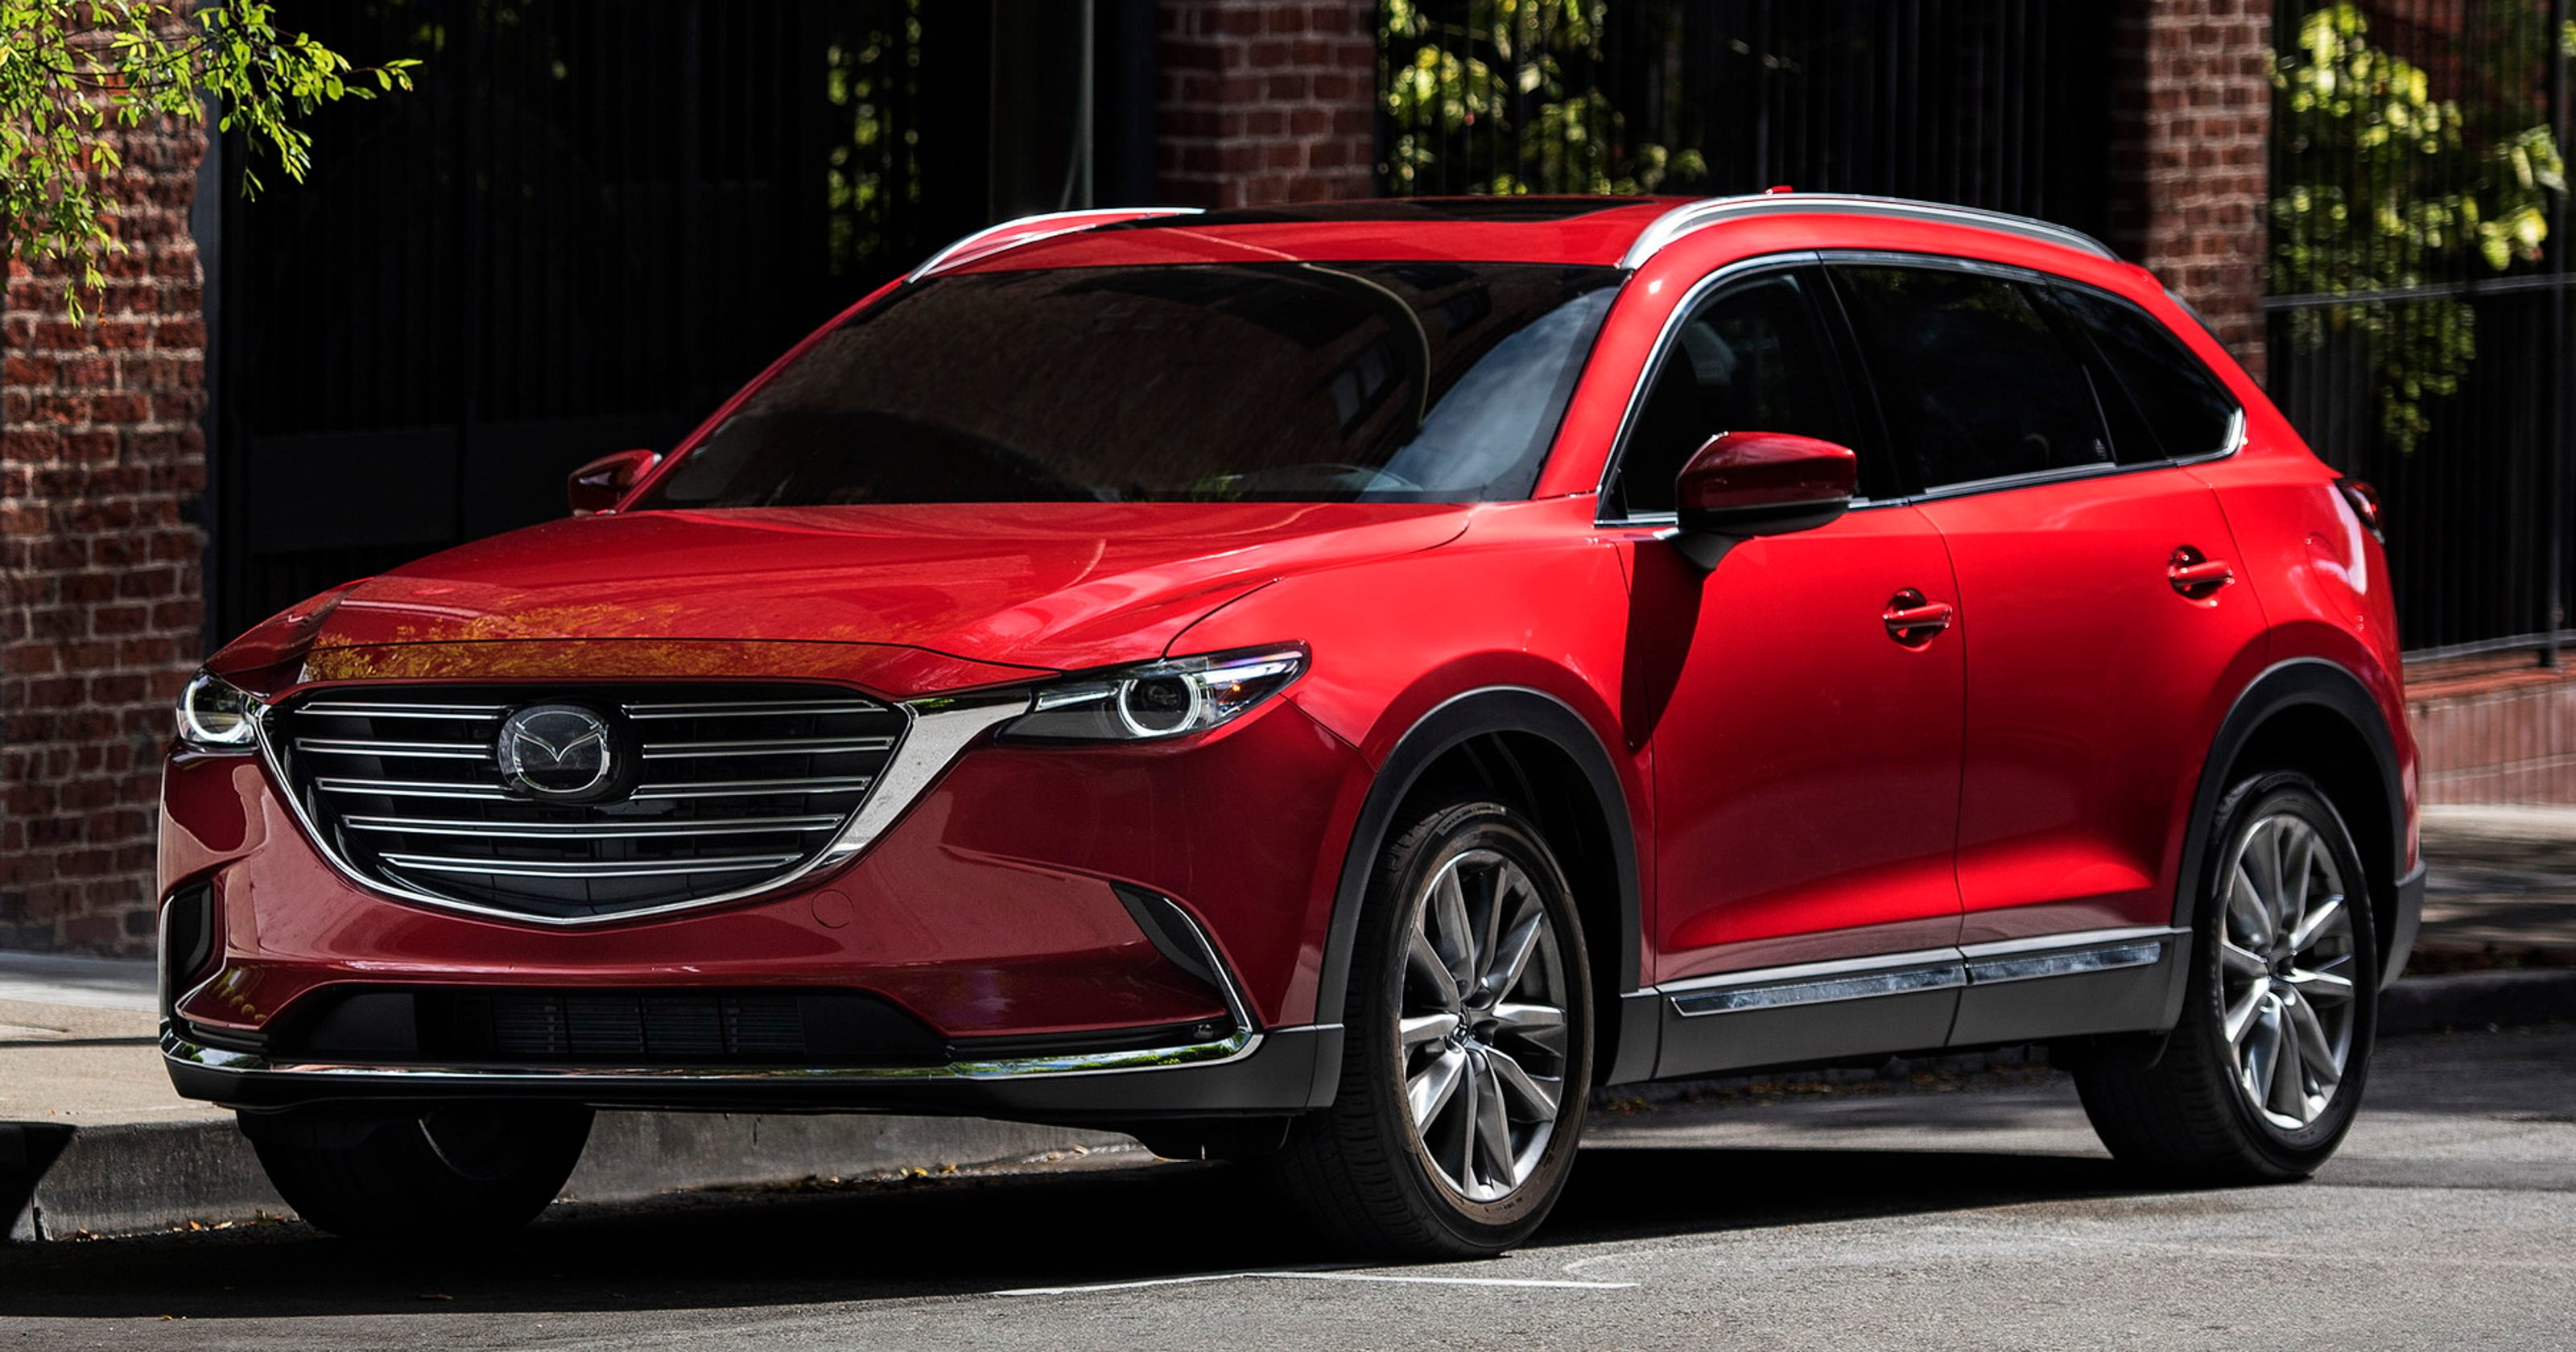 2017 Mazda Cx 9 Suv Is Brand S Versatile Flagship